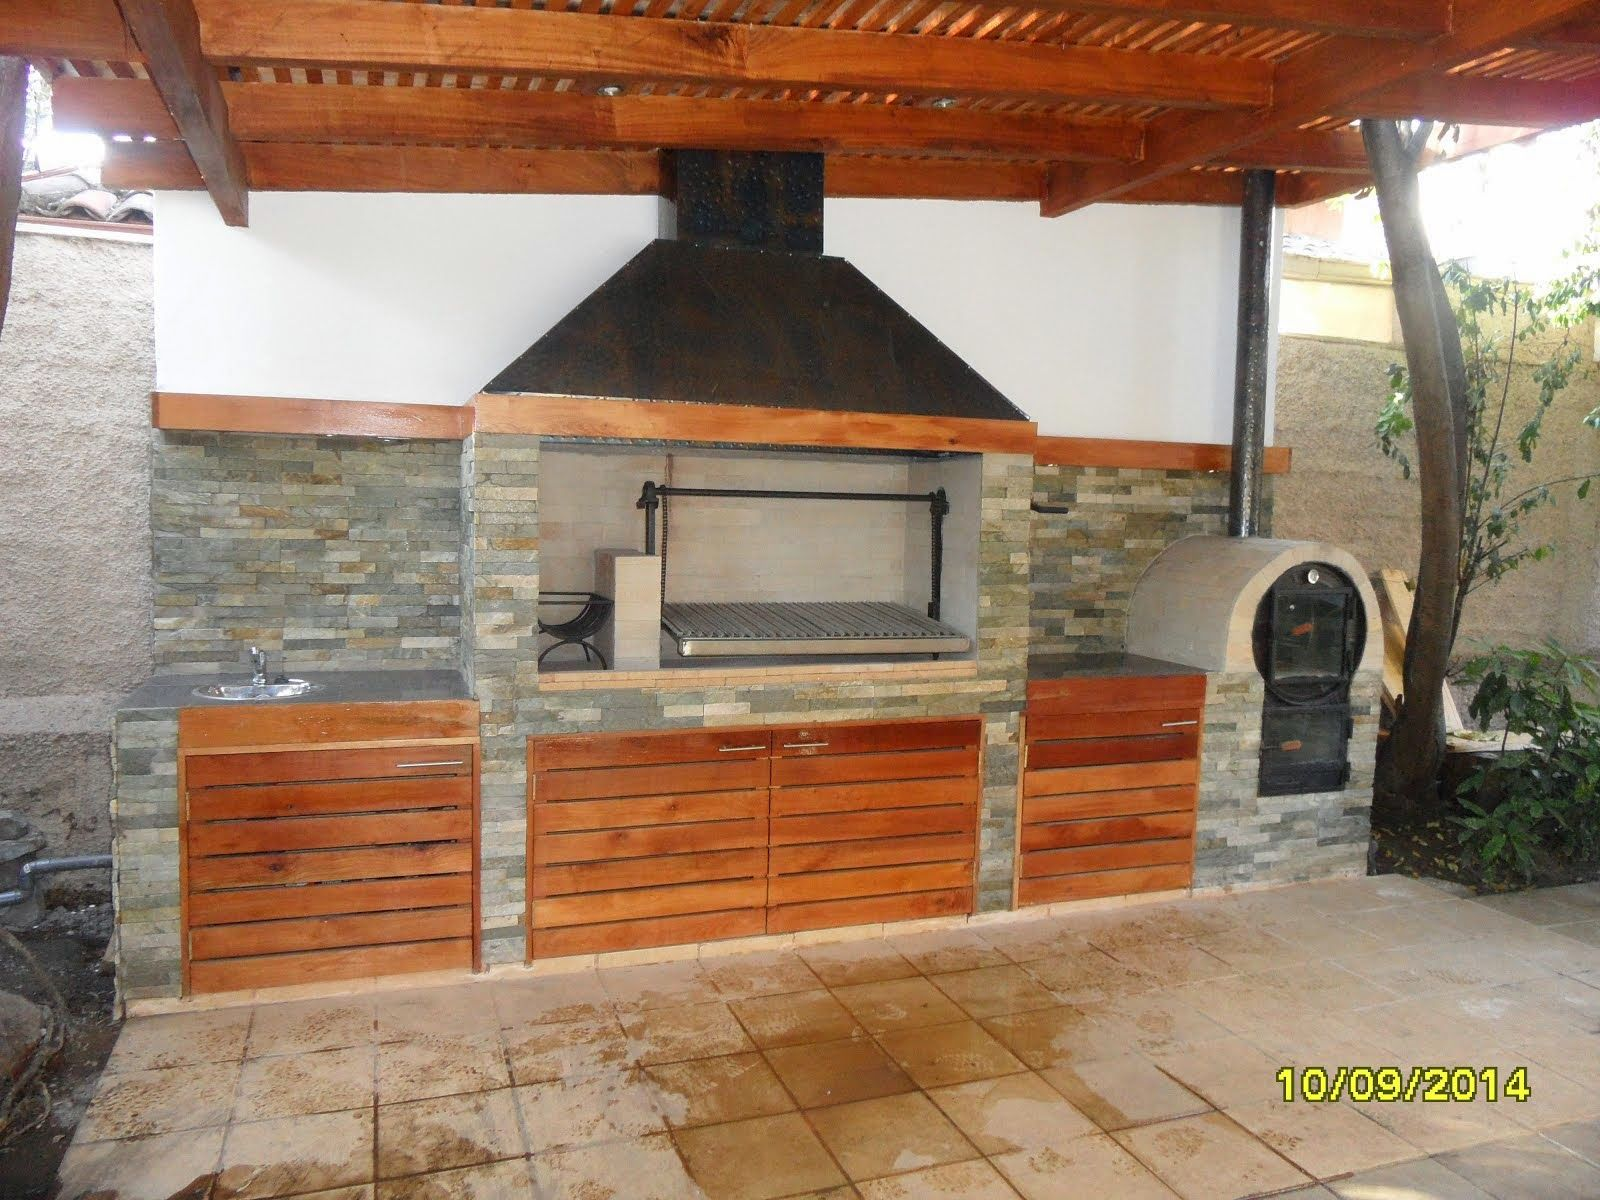 Barbacoas De Barro Quincho Mtapia Parrillas T Patio Outdoor Y Kitchen